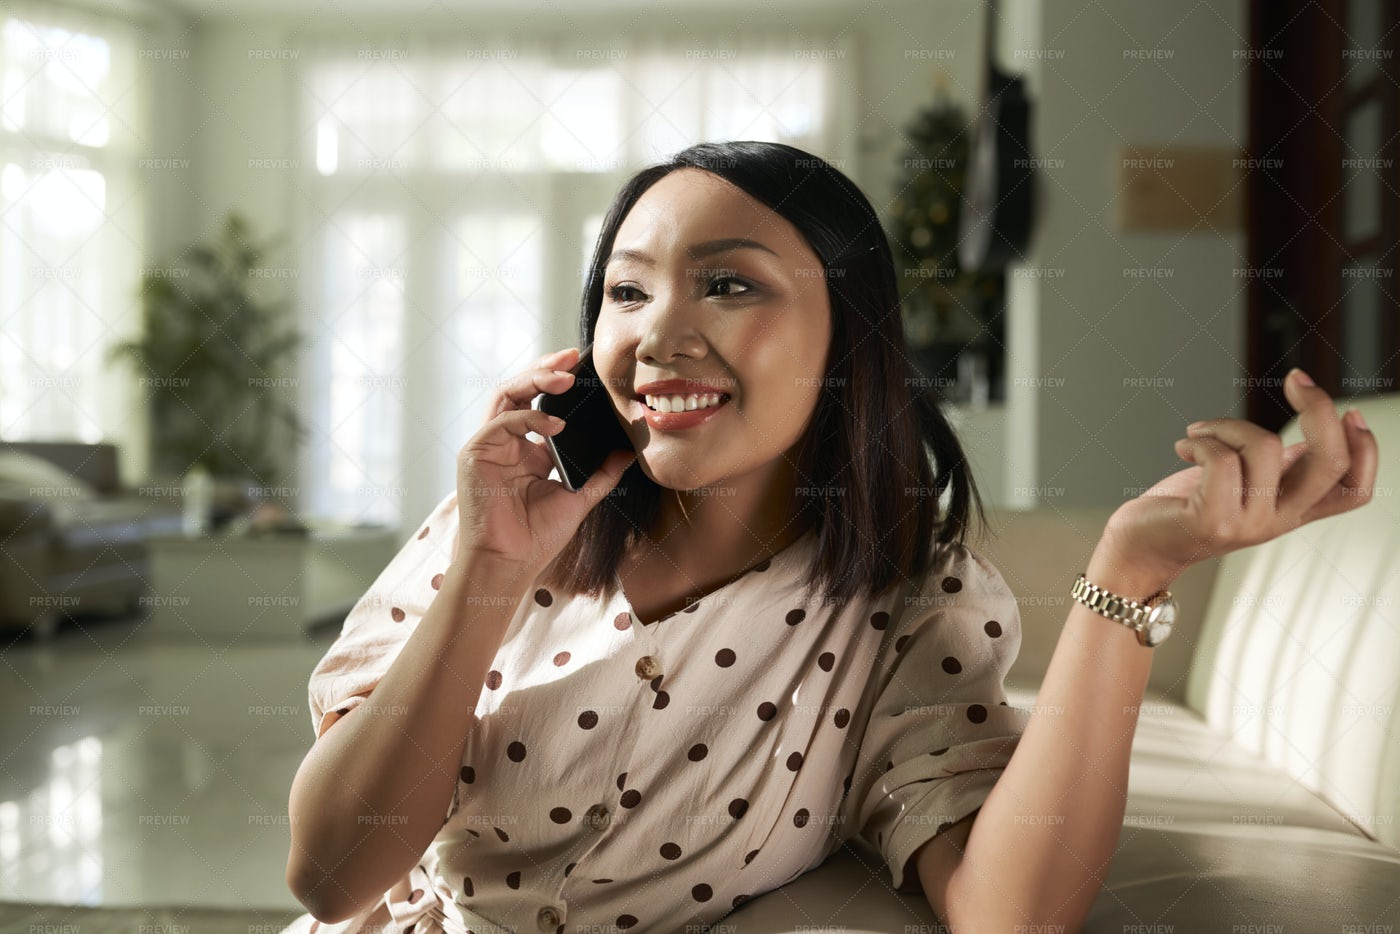 Woman Chatting With Friend On Phone: Stock Photos